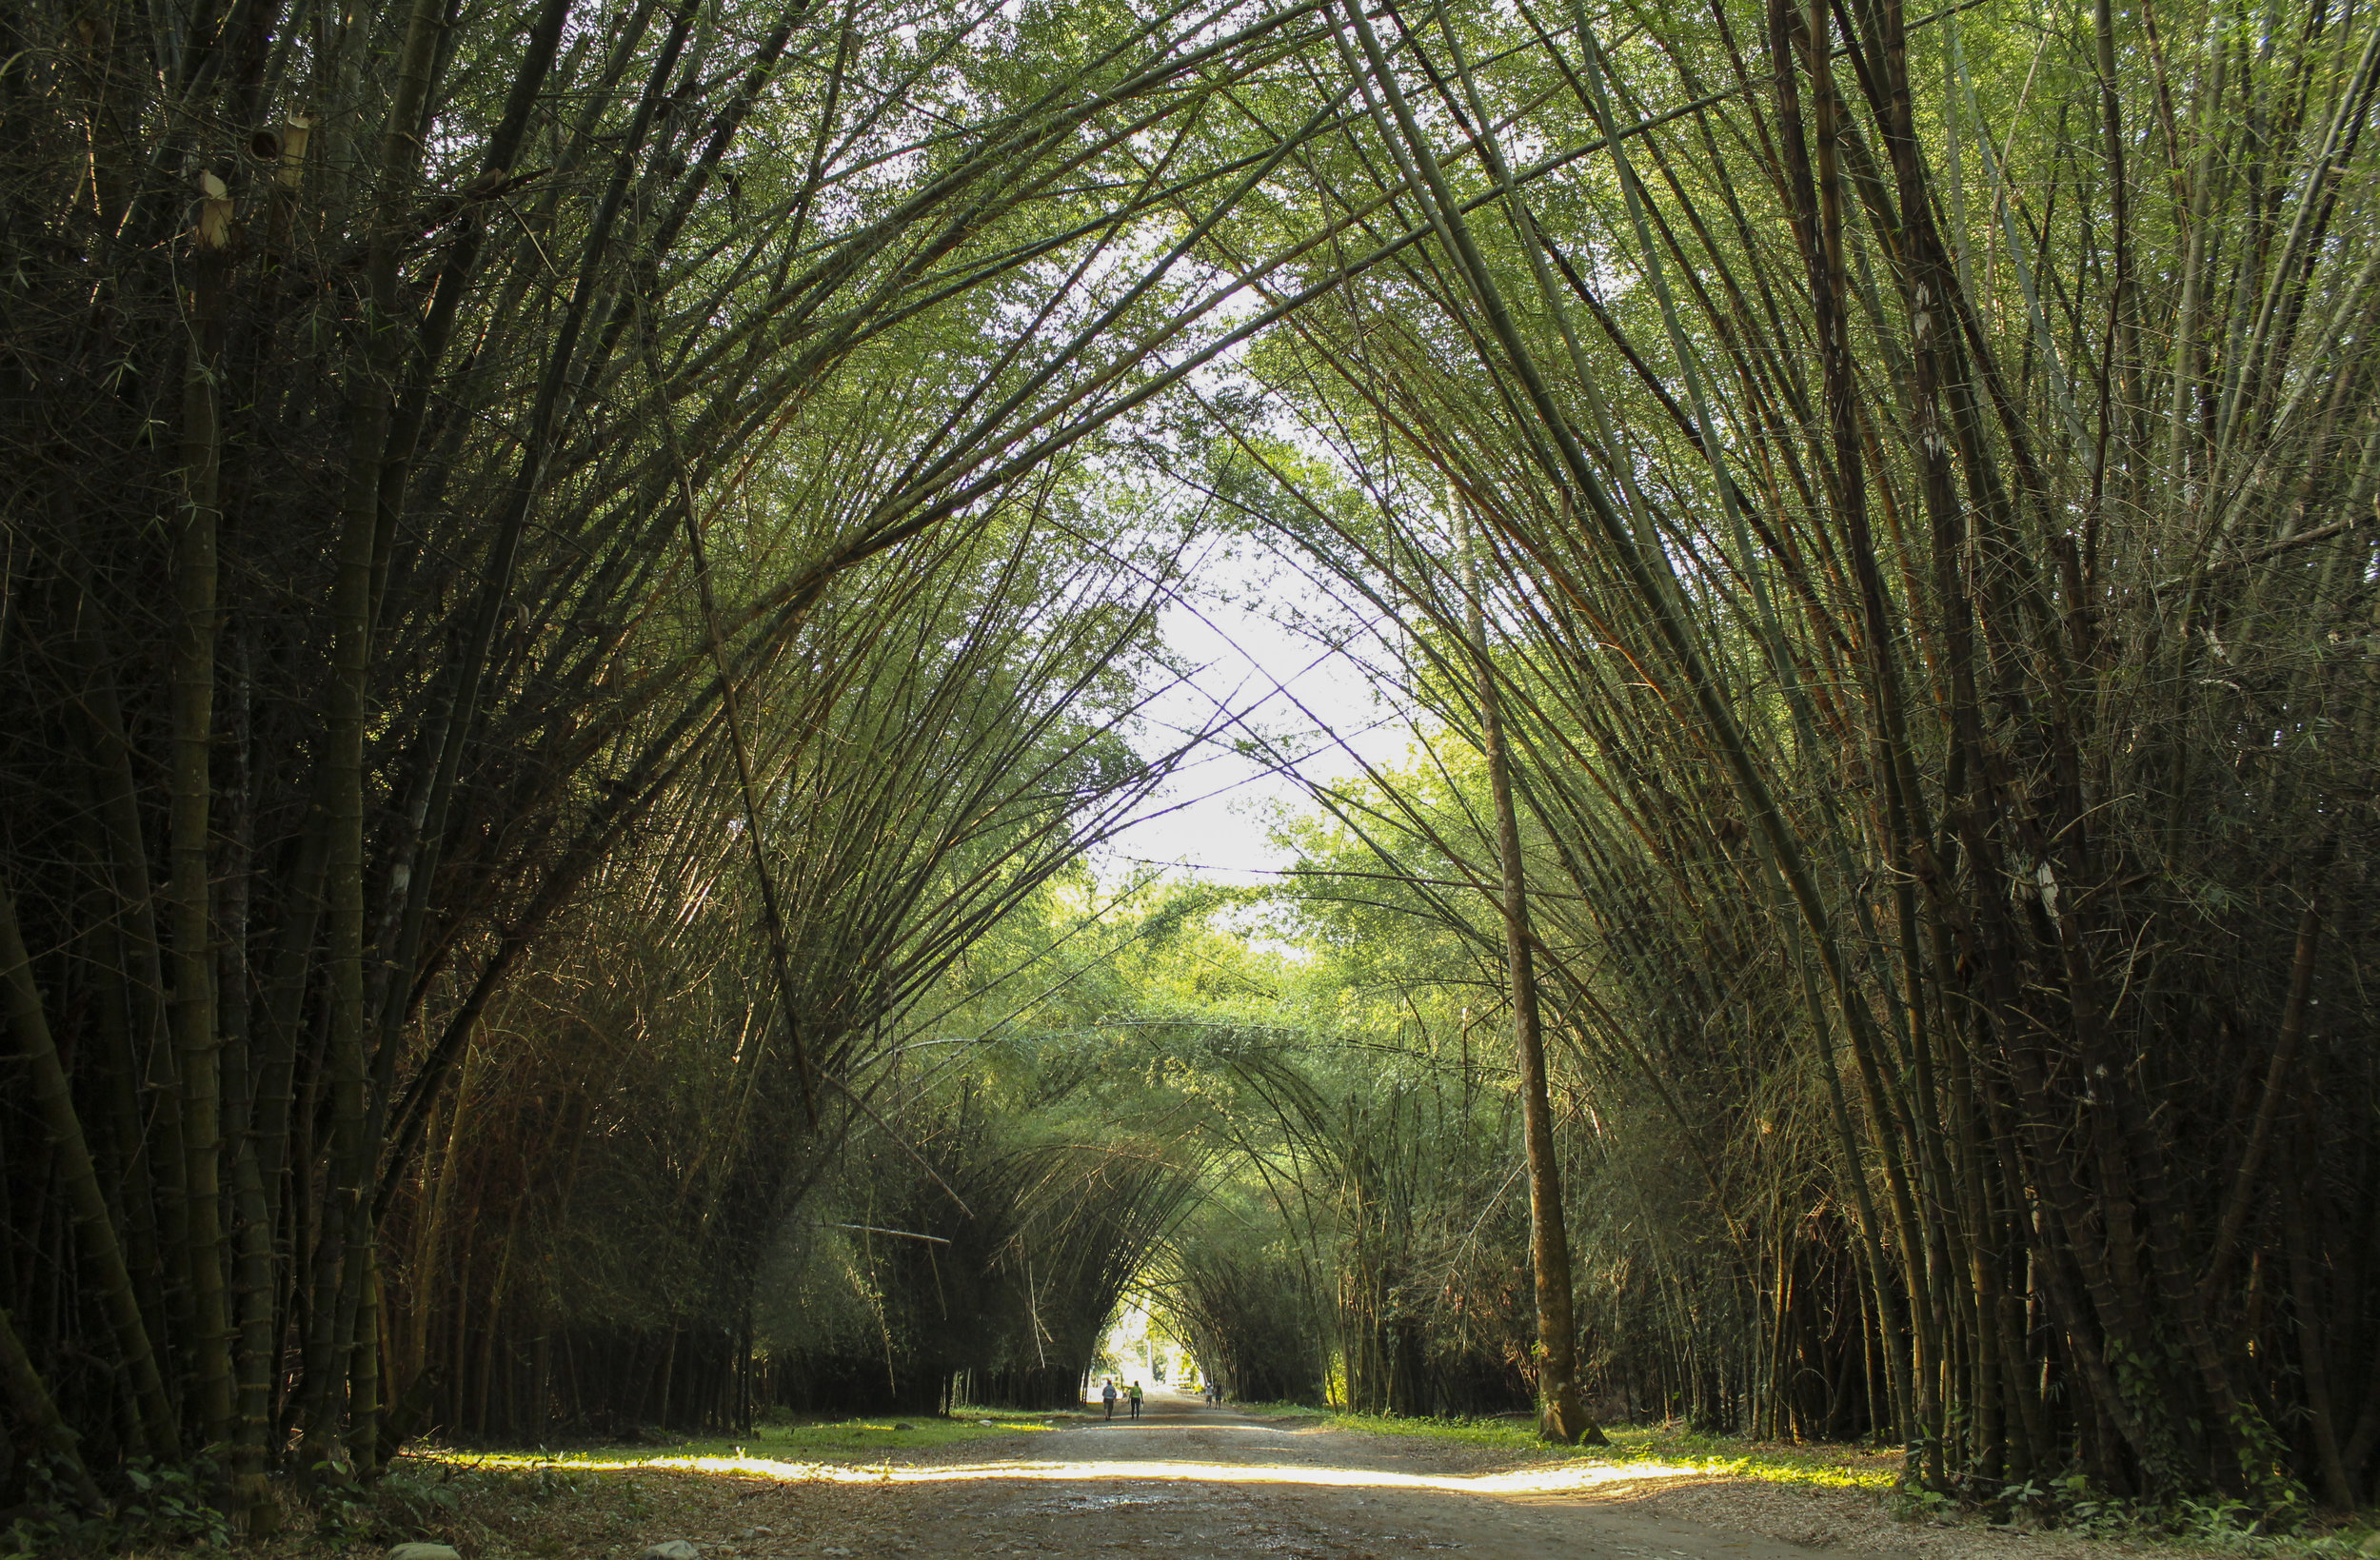 Bamboo-lined track